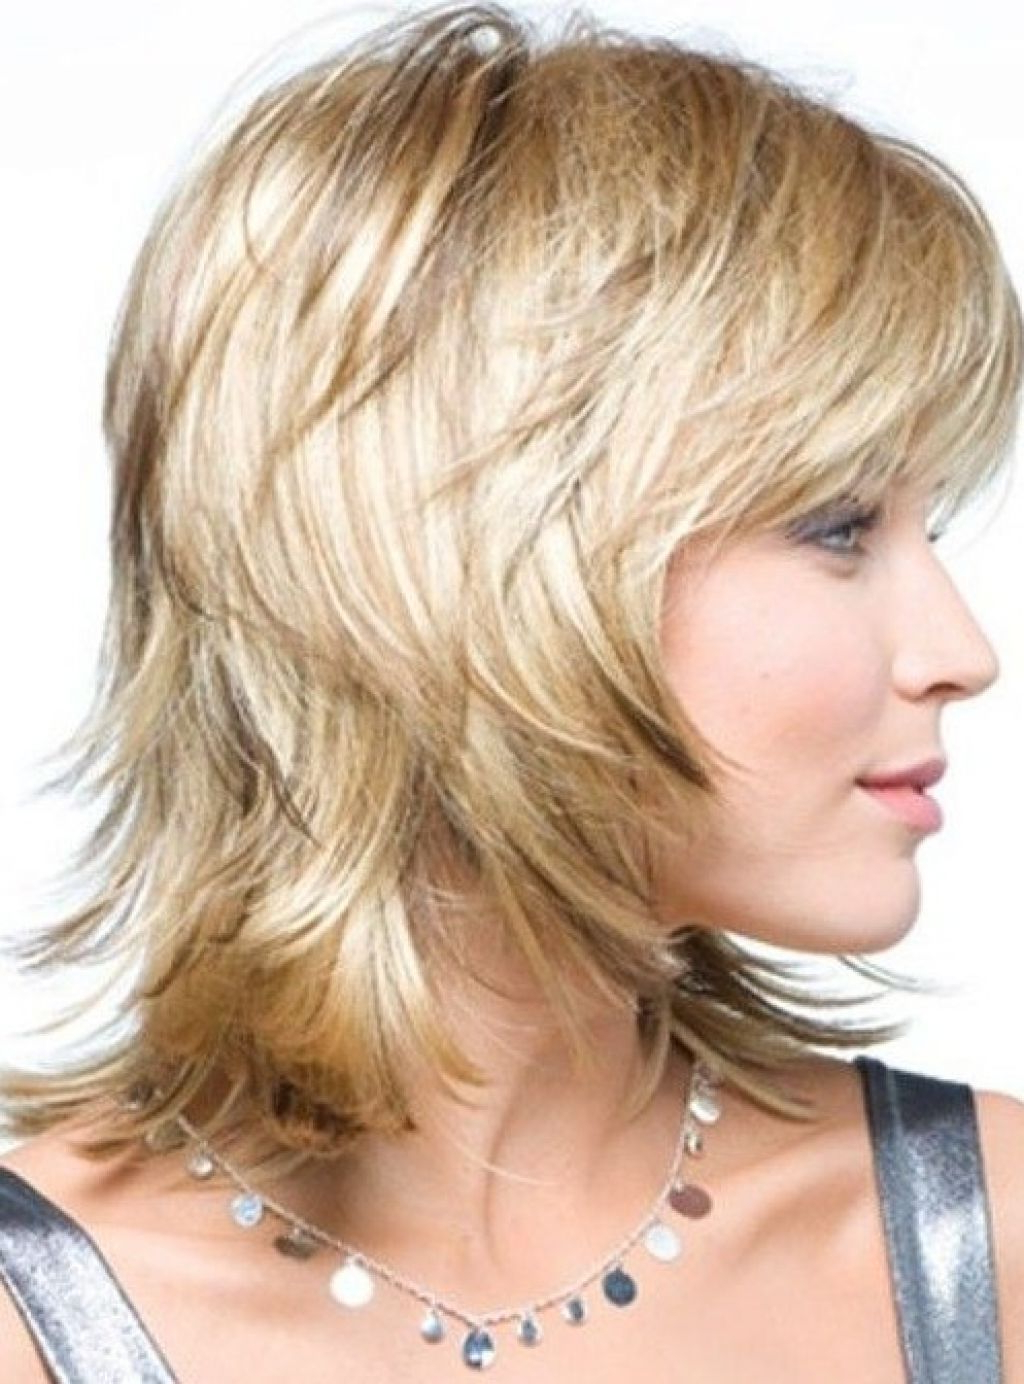 Medium Hairstyles To Make You Look Younger (View 14 of 20)